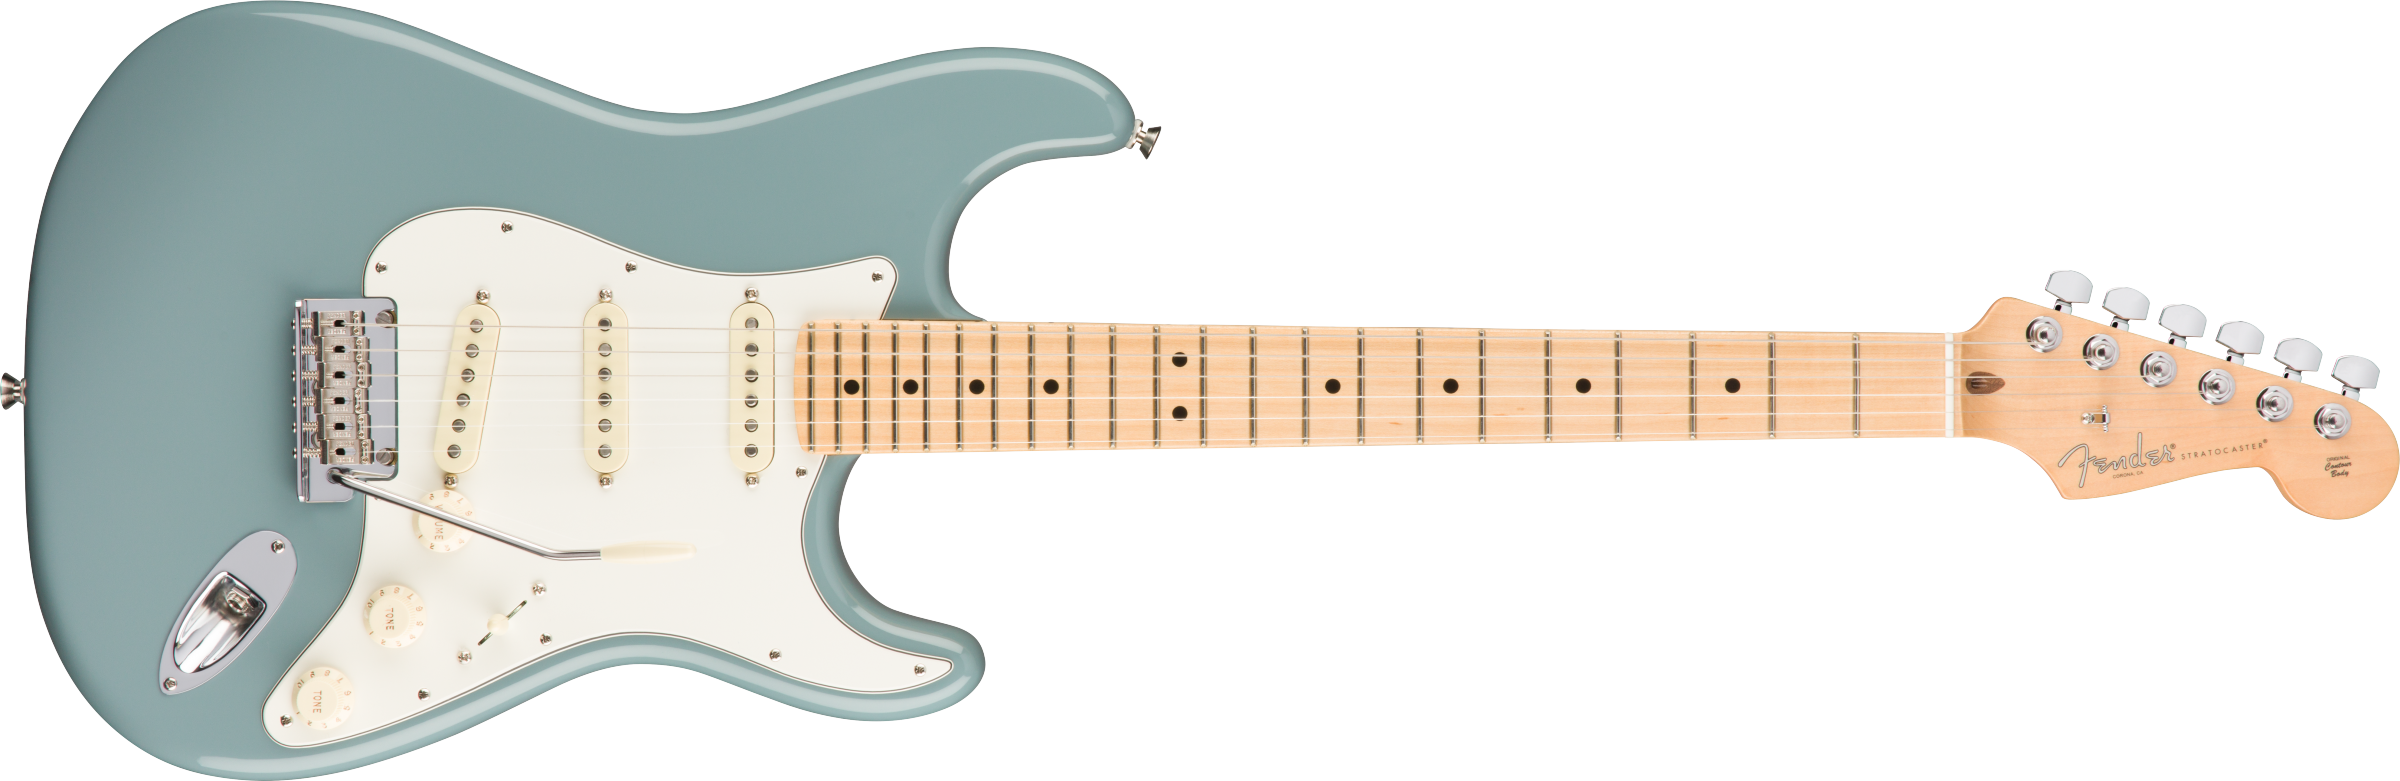 FENDER AMERICAN PROFESSIONAL AM PRO STRATO MN SNG - 0113012748